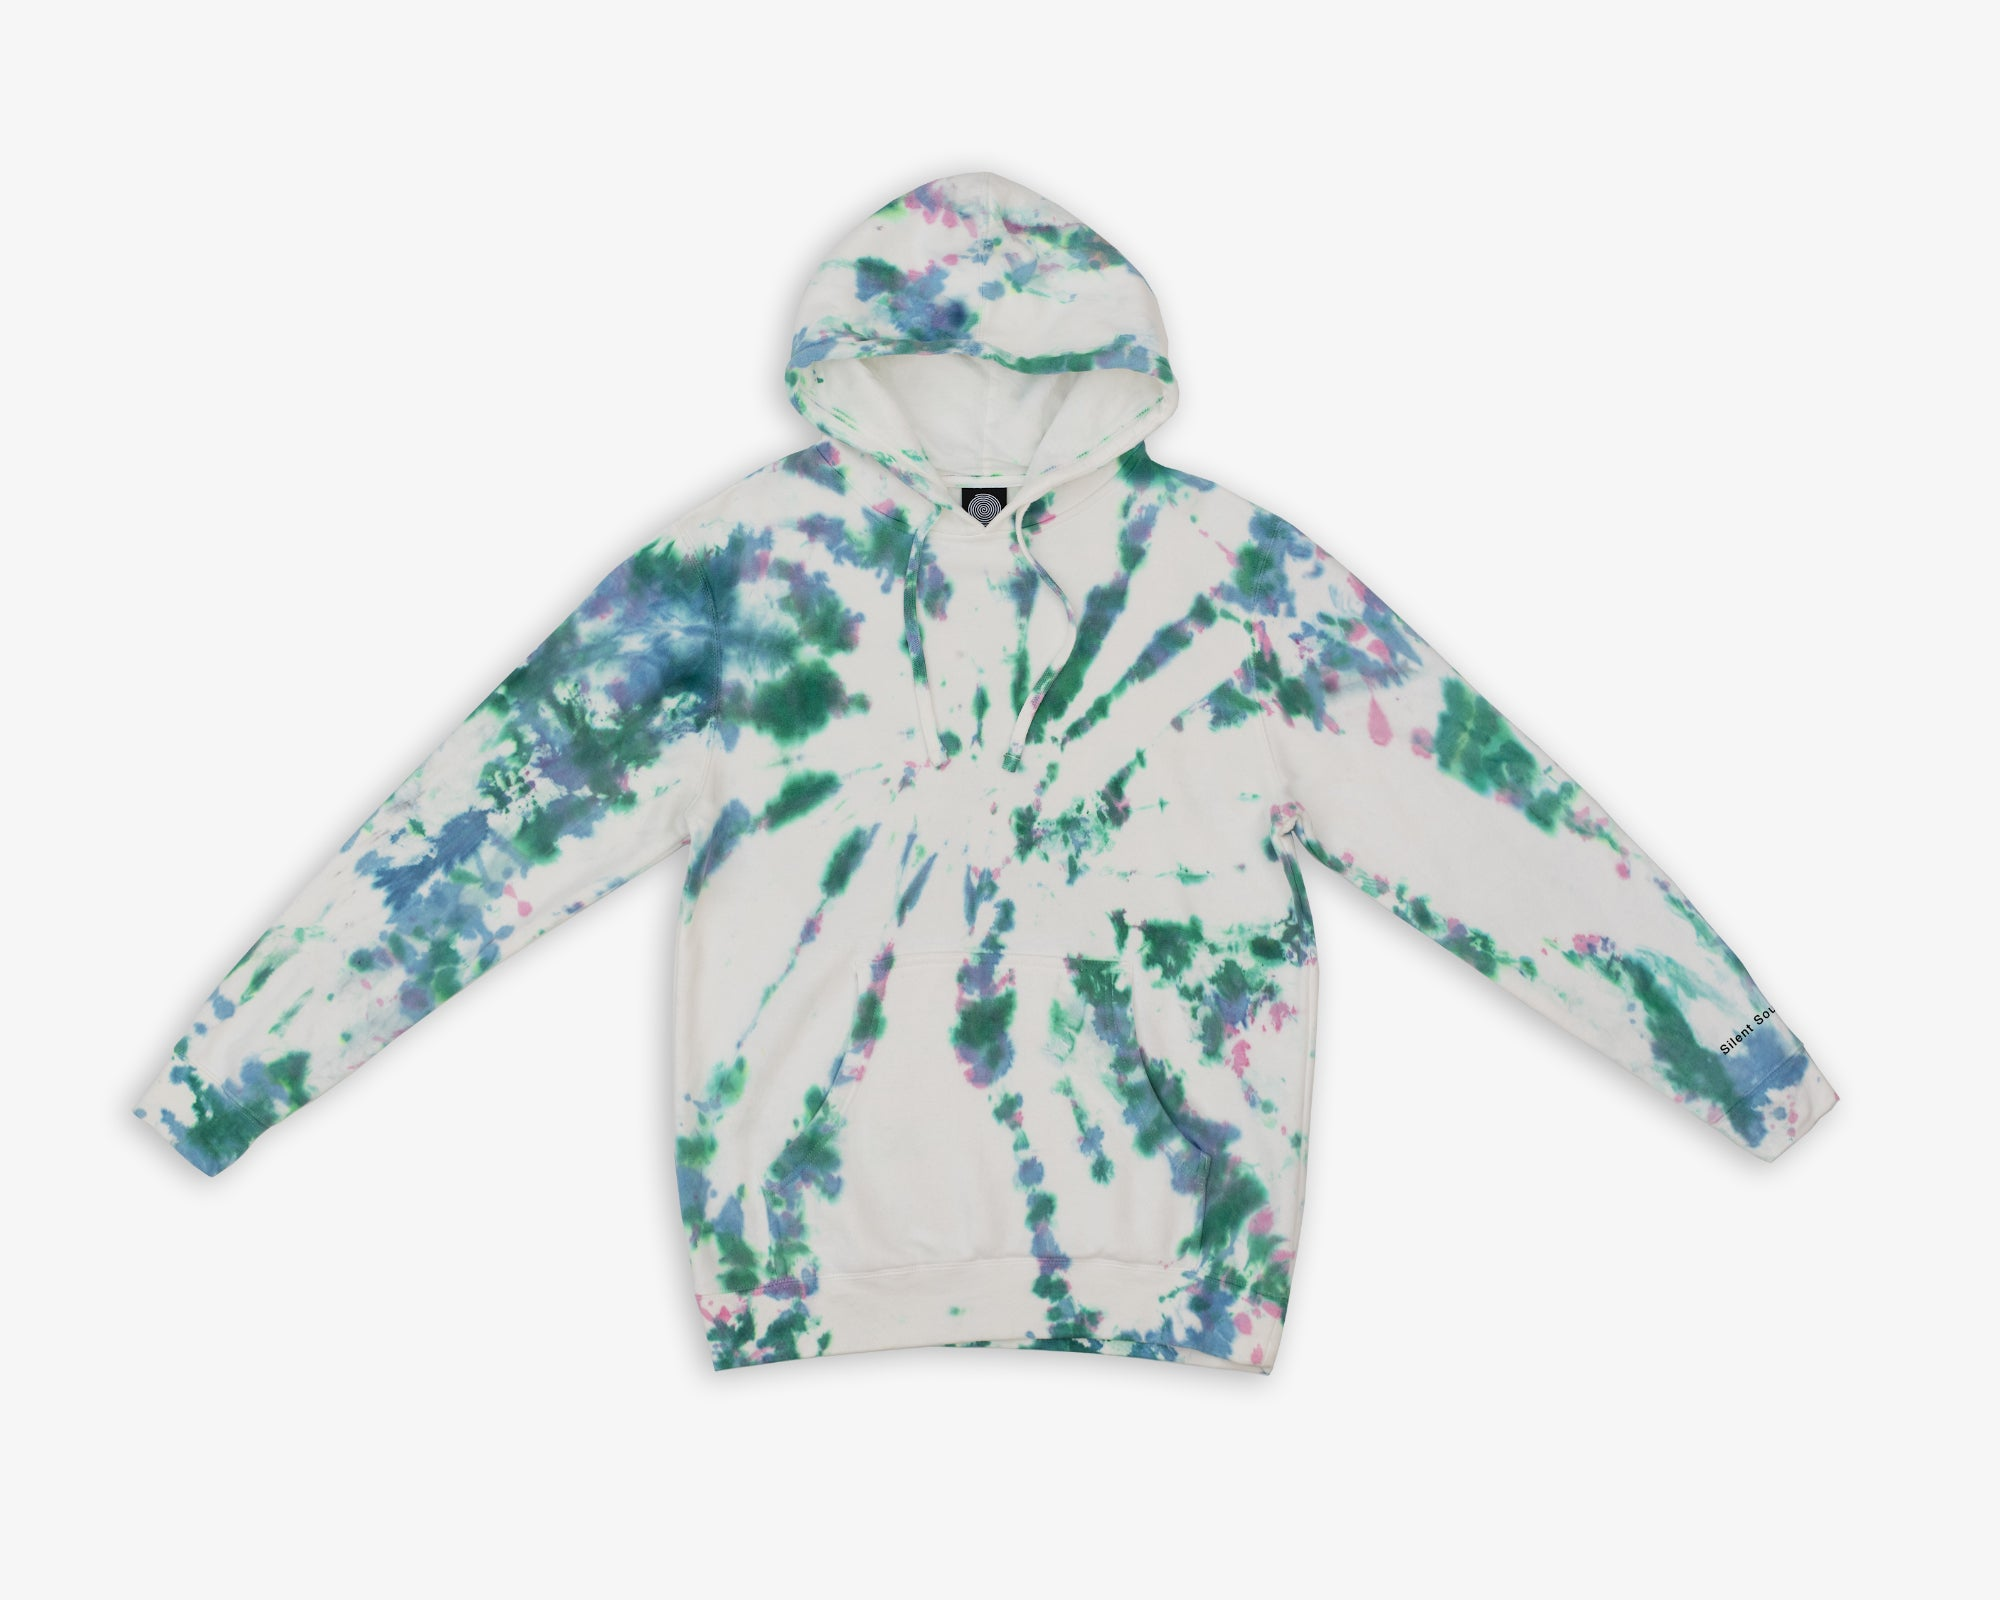 Image of Hooded Sweatshirt - Hand Dye / Black